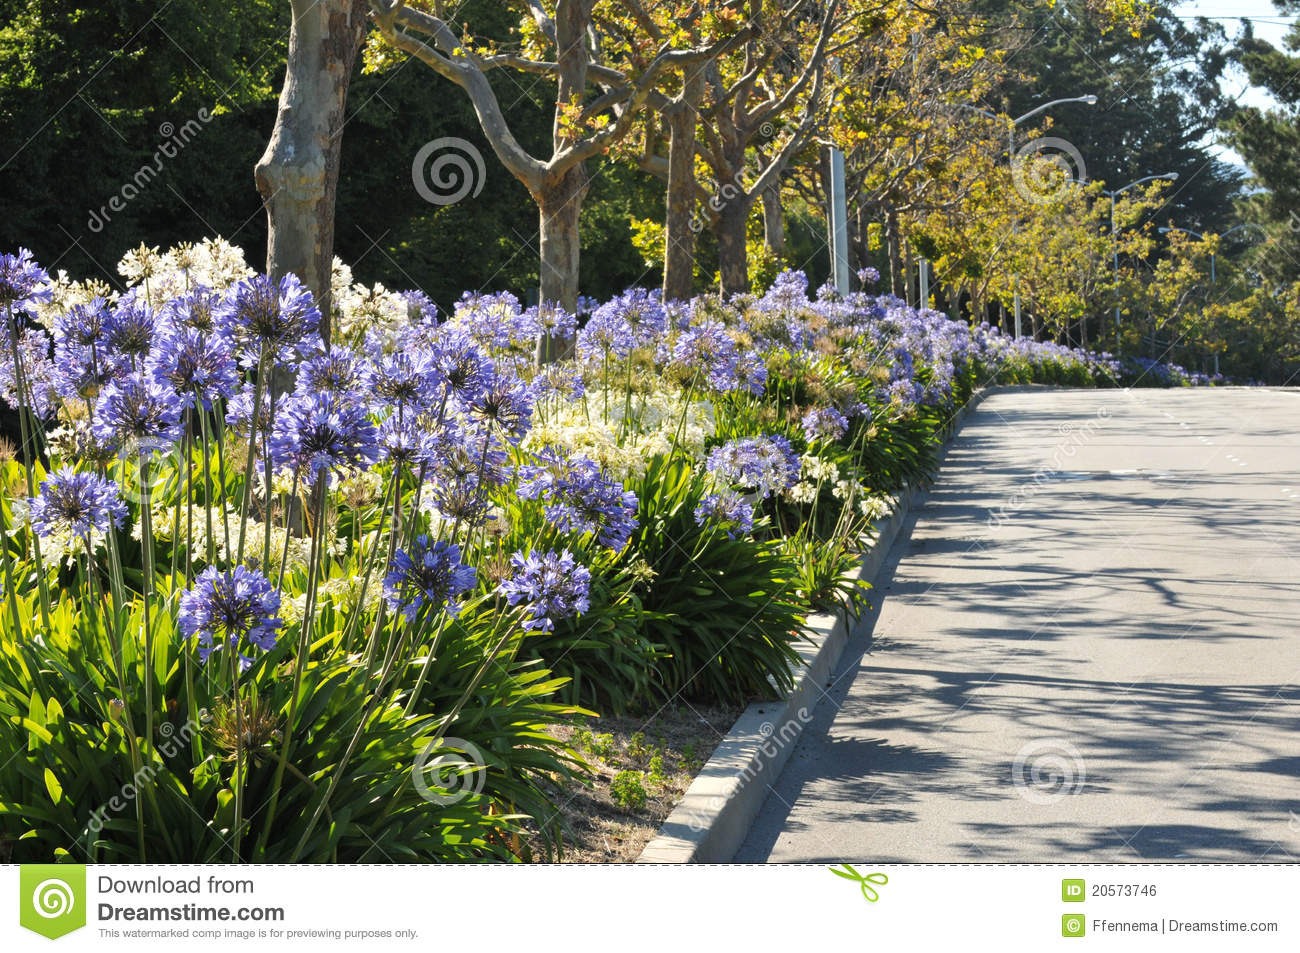 Boulevard Median Has Flowers And Trees Royalty Free Stock Image Image 2057